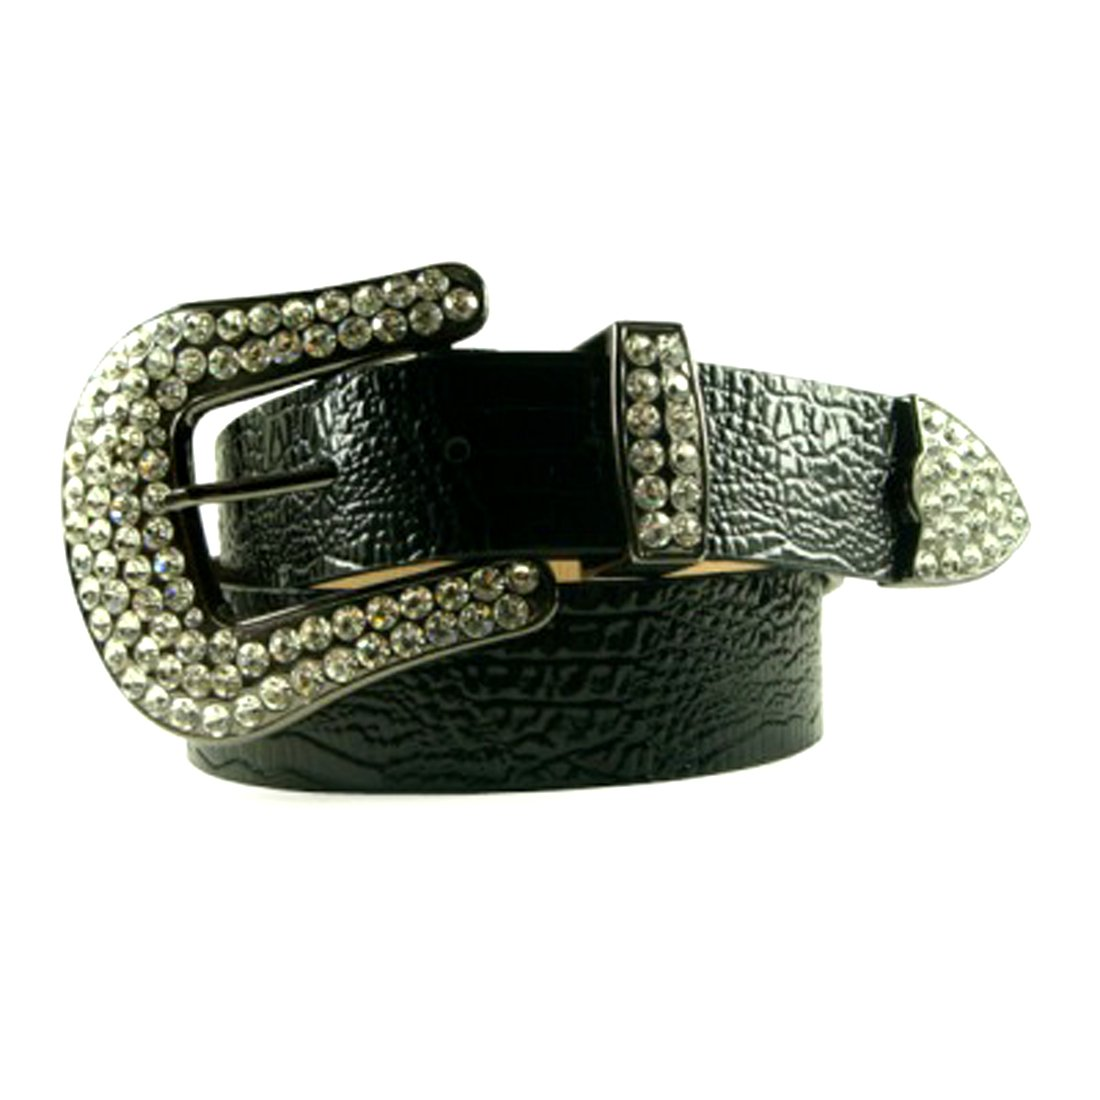 Black Leather Belt in a Crocodile Pattern Decorated in Clear Crystal on a Silver Tone Buckle, Size S/M